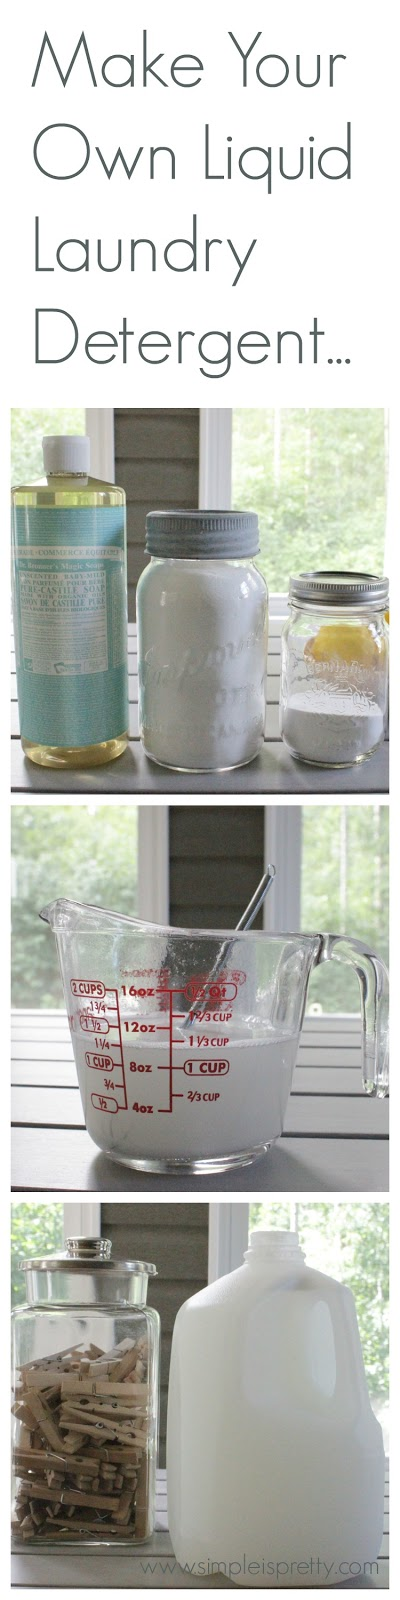 Make Your Own Liquid Laundry Detergent - www.simpleispretty.com